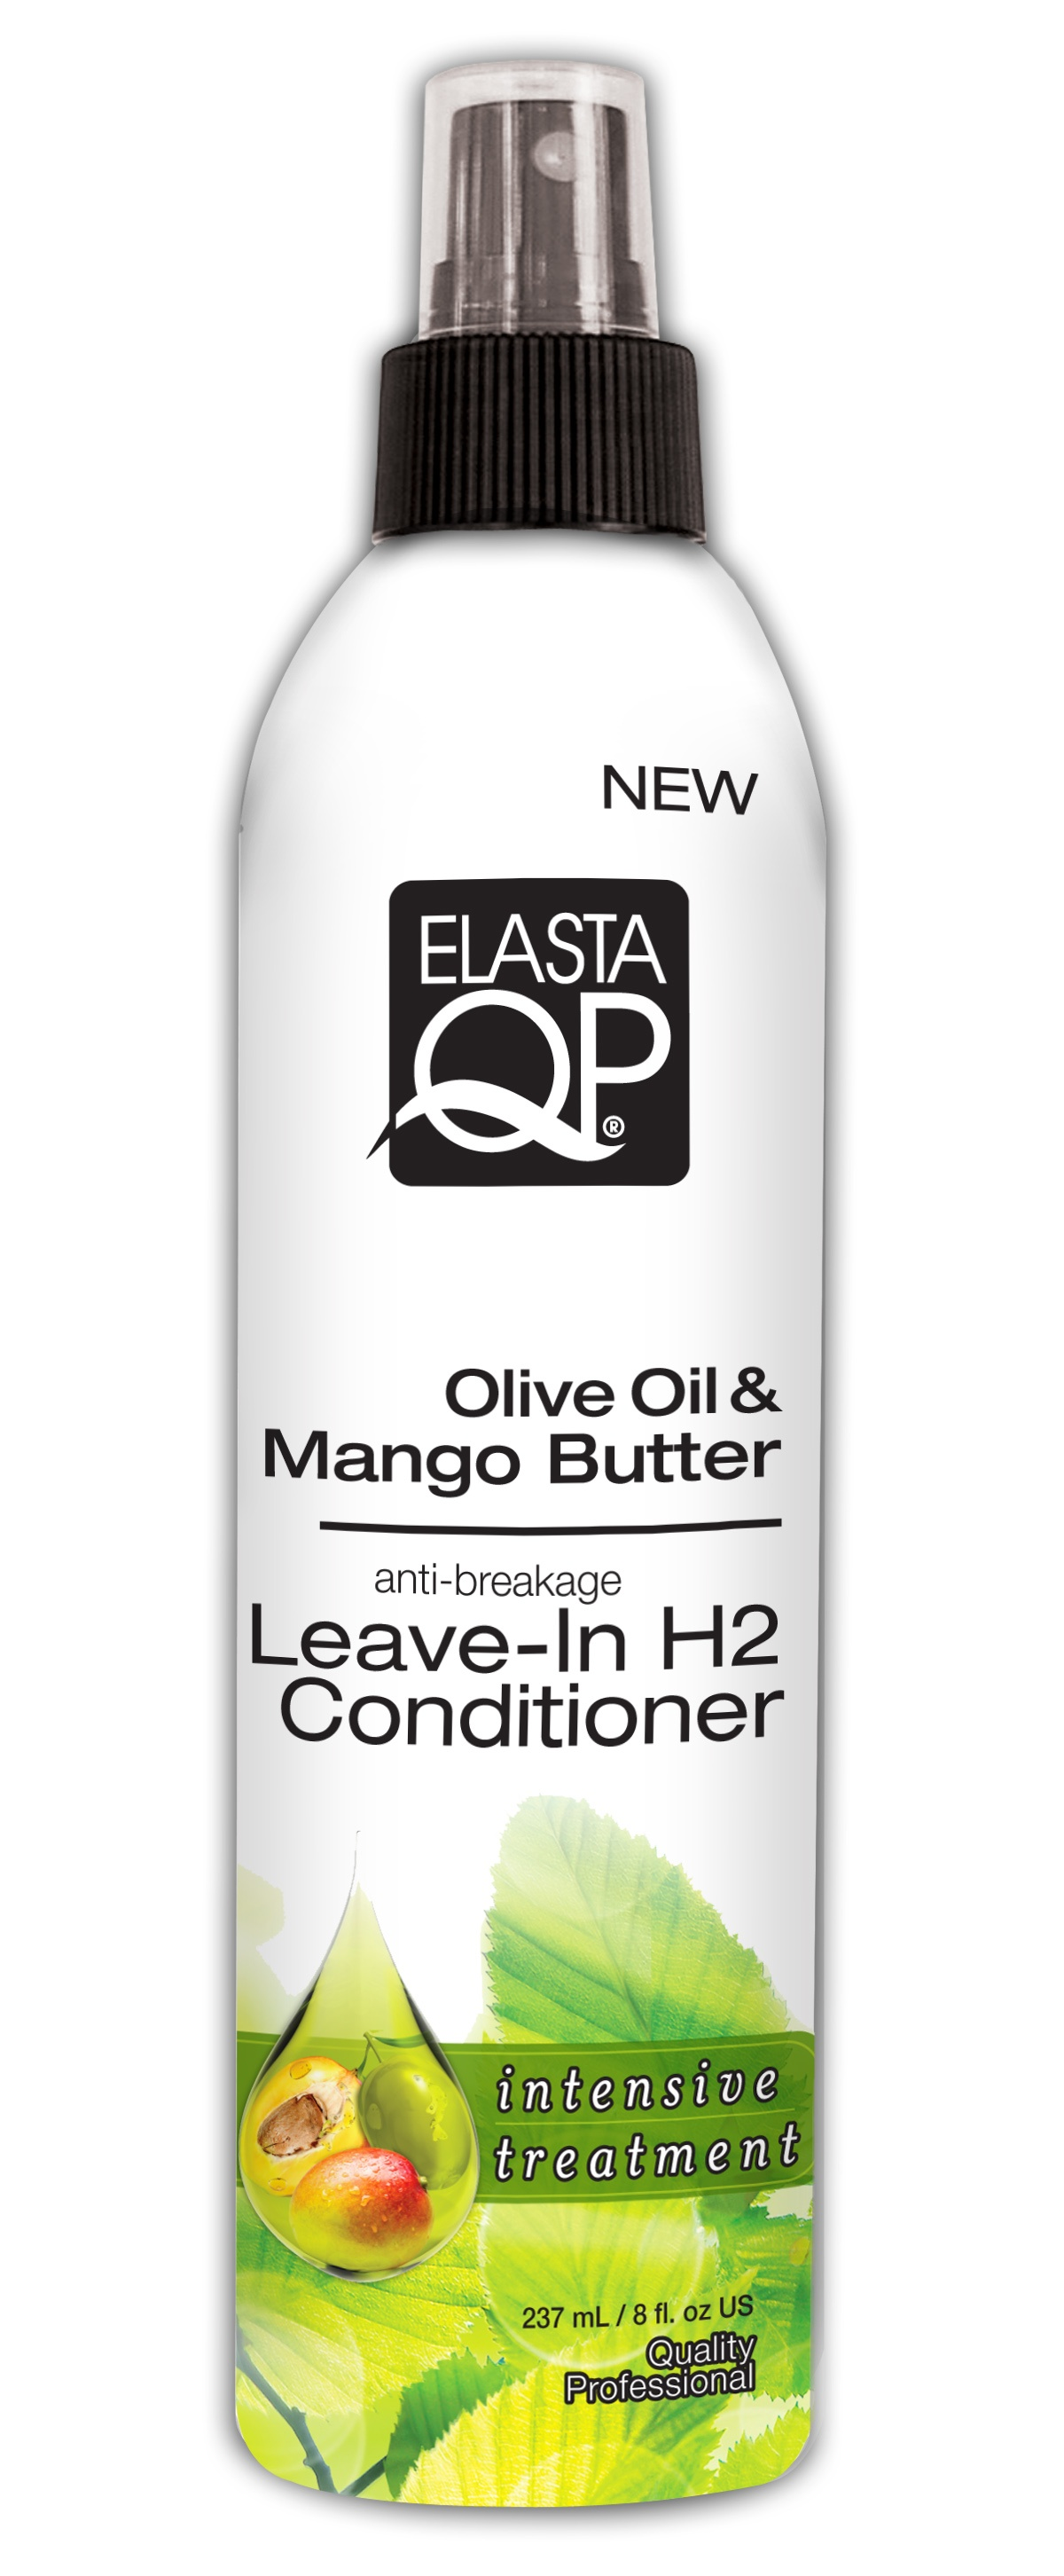 Olive Oil & Mango Butter Anti-breakage Leave-In Conditioner